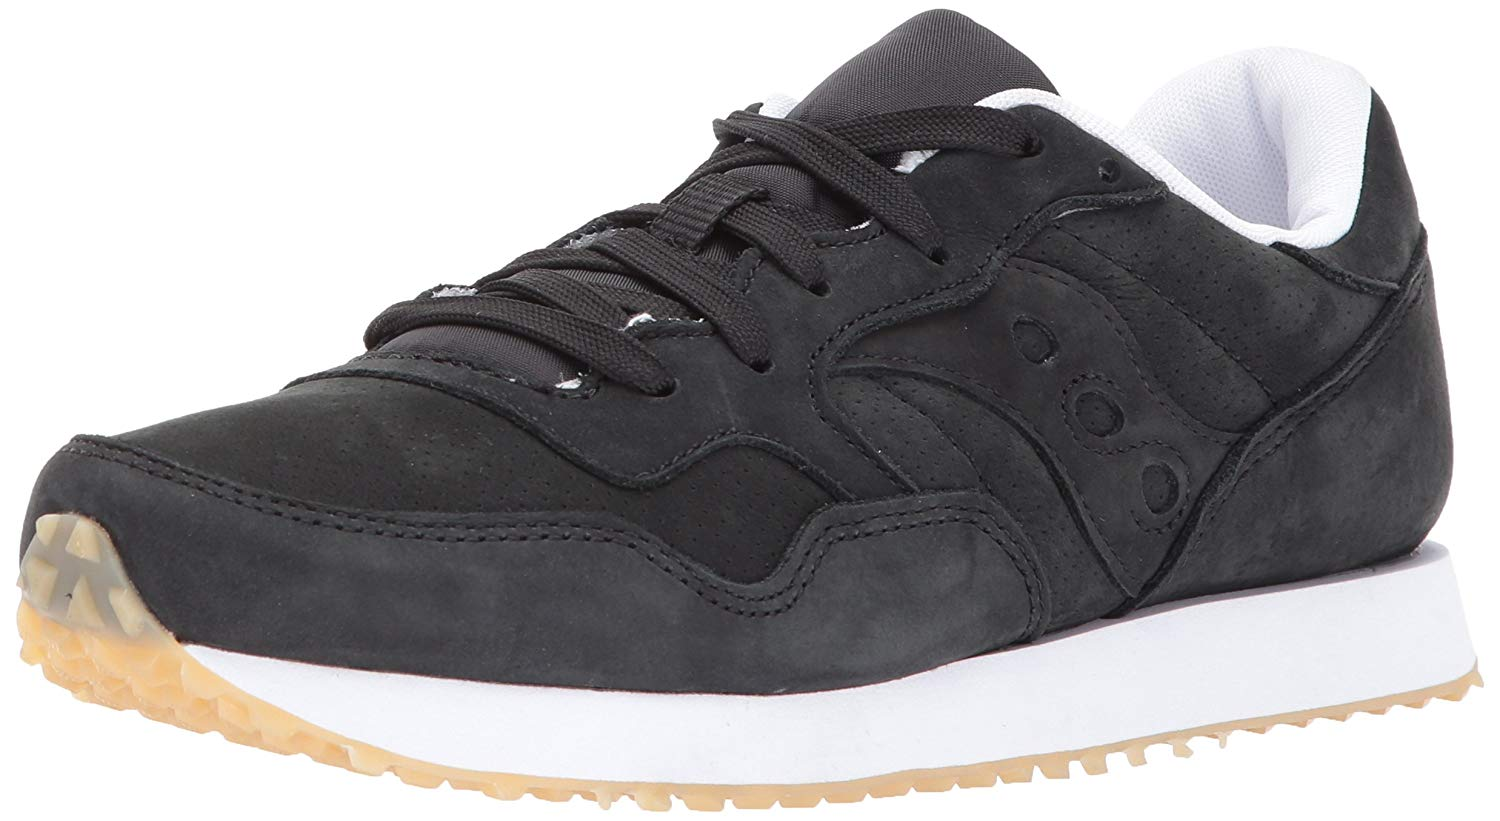 99d823433816ae Saucony-Womens-dxn-trainer-Low-Top-Lace -Up-Fashion-Sneakers-Black-d9f8b9d690fa7e.jpg